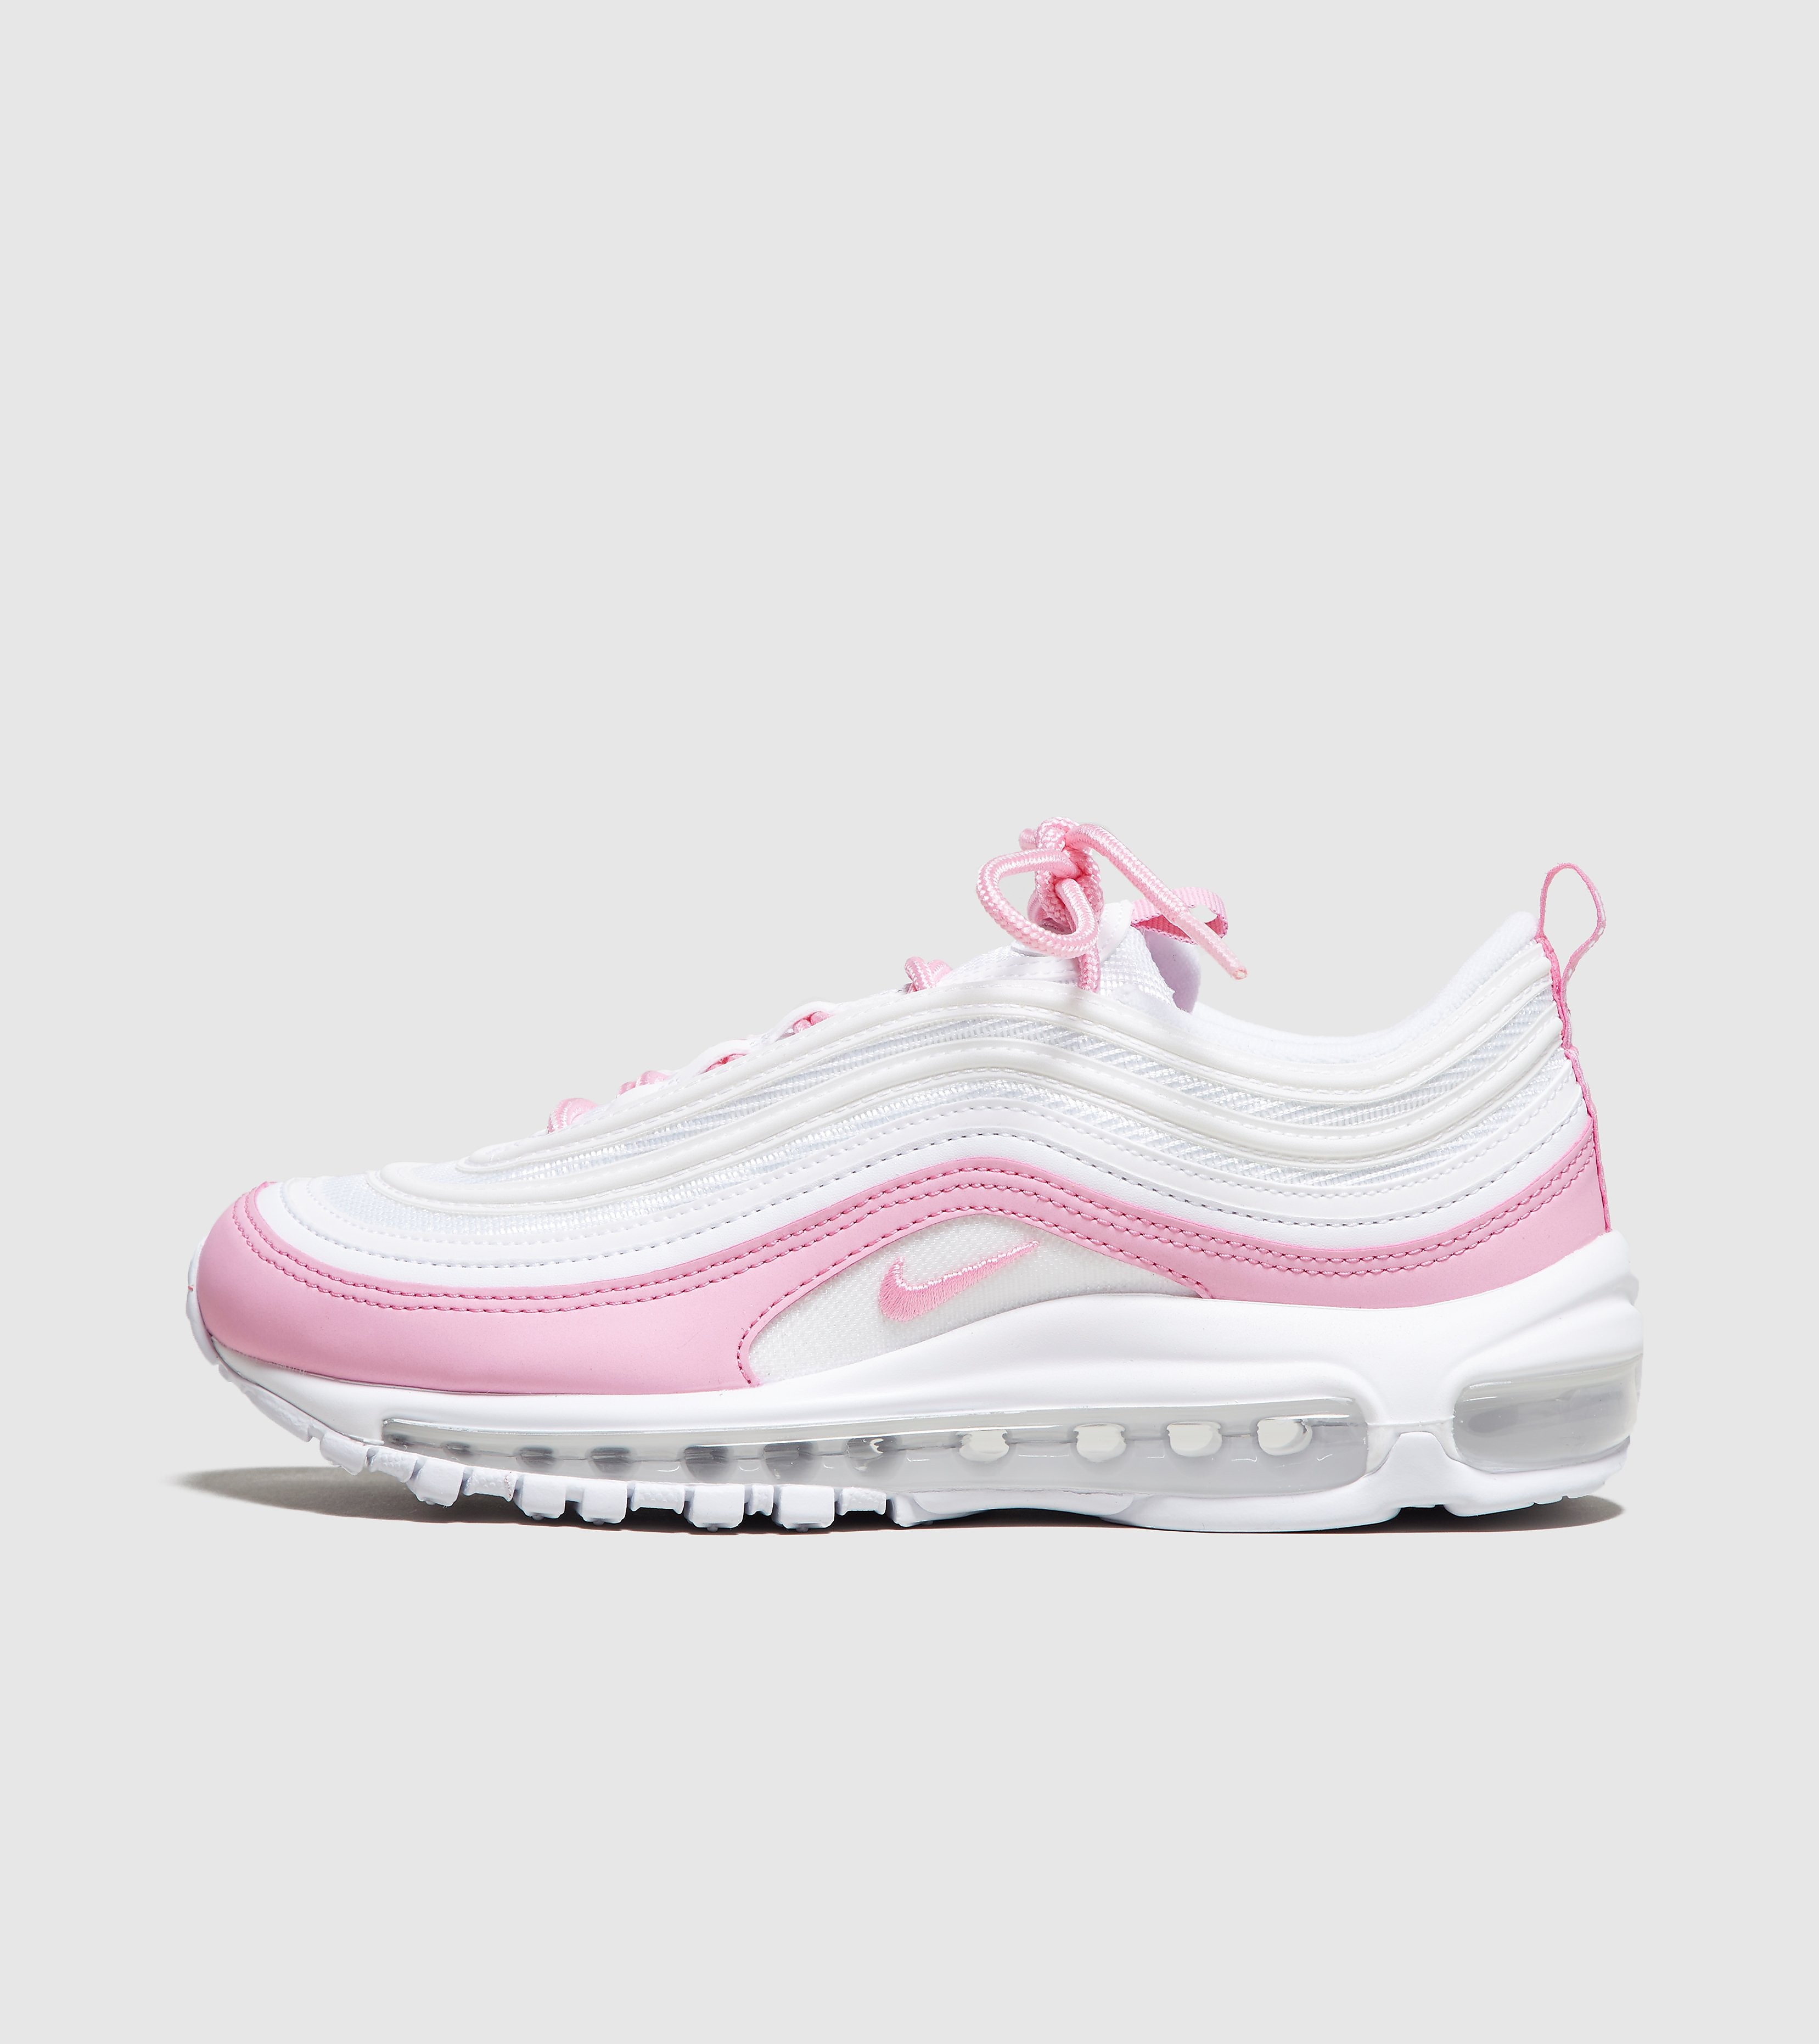 Nike Air Max 97 Essential Women's